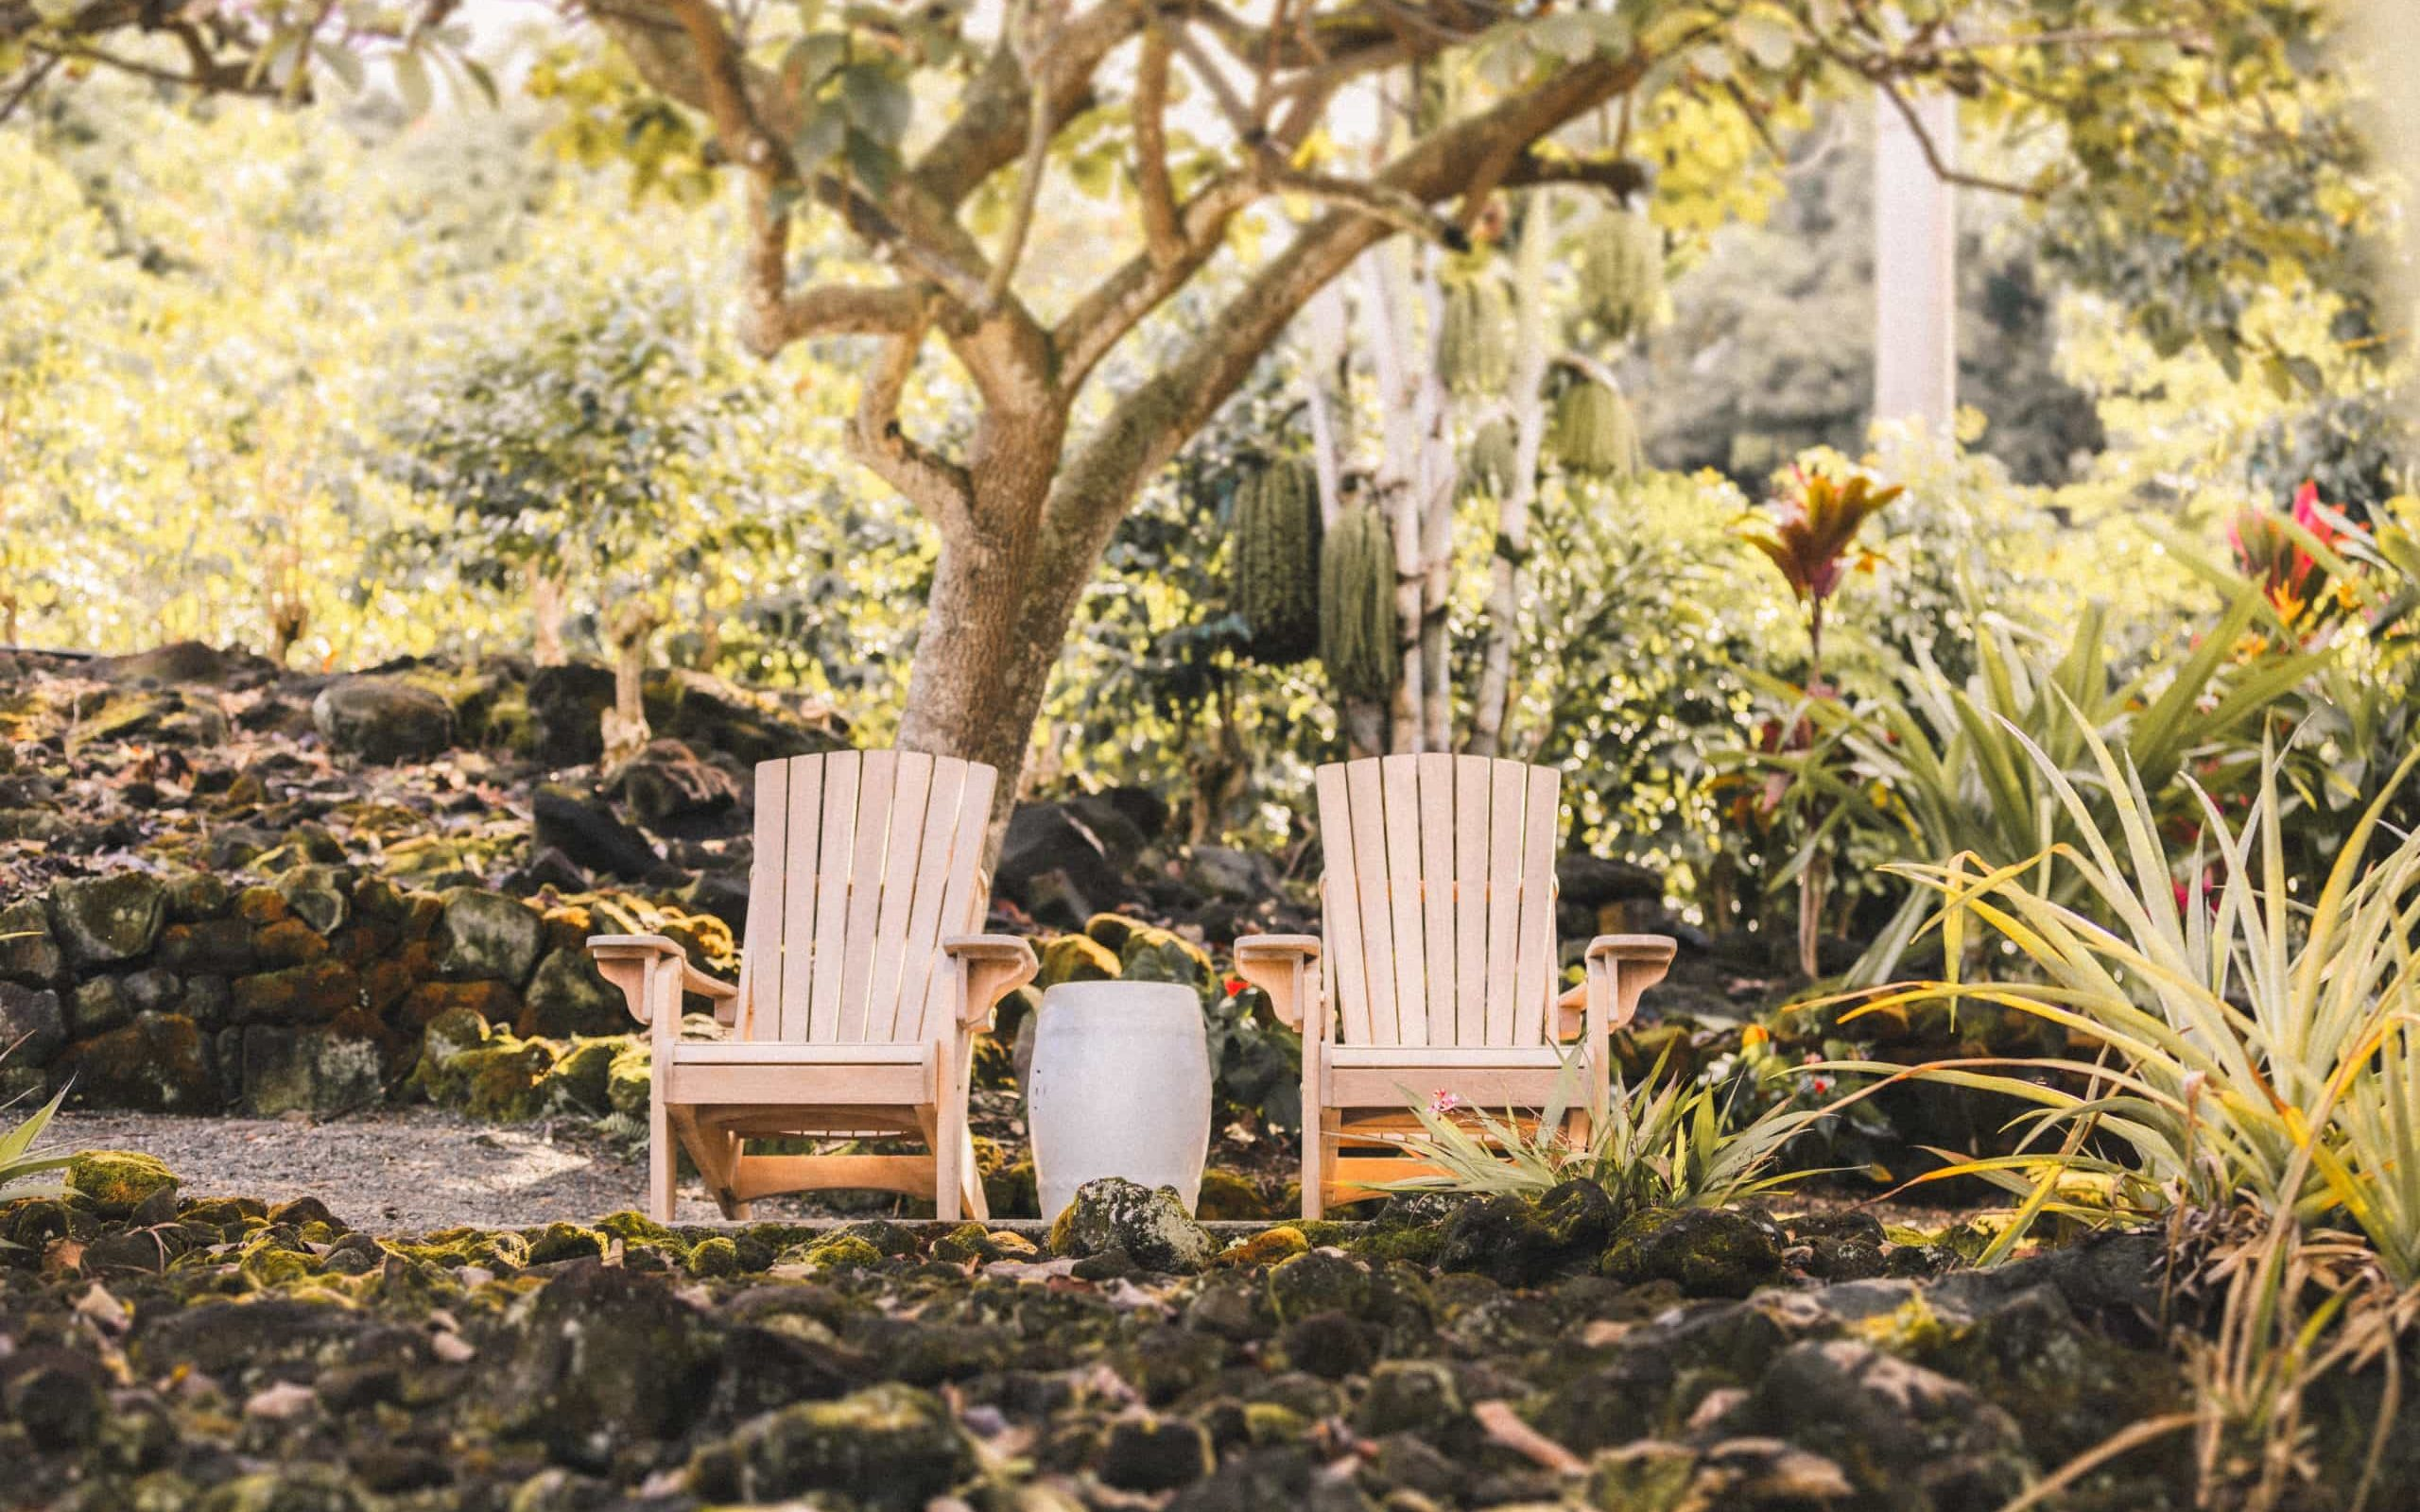 Wooden rocking chairs facing the ocean with tropical fruit tree and pineapple patch